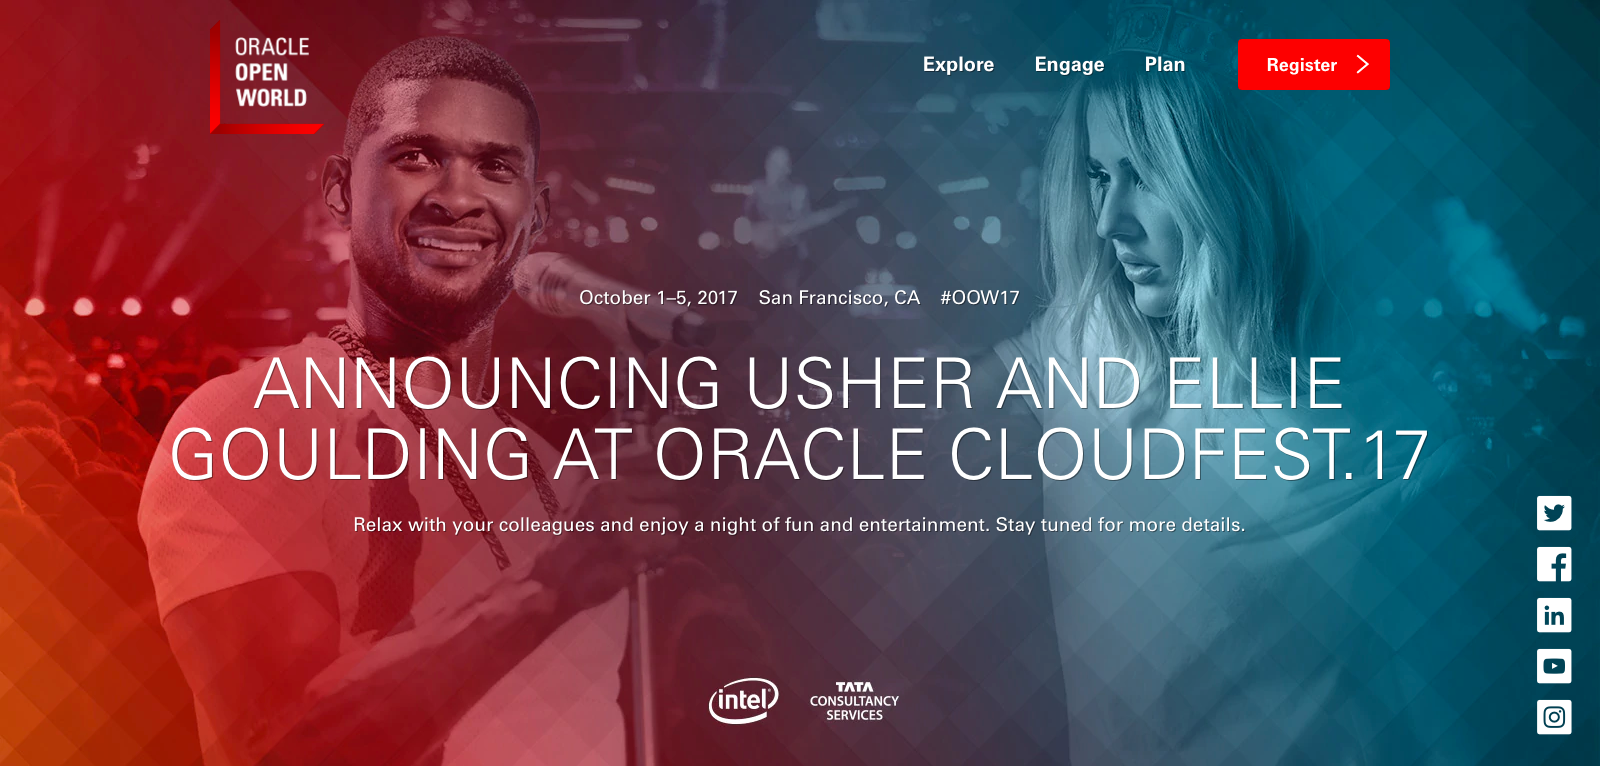 Image of the Oracle OpenWorld Web site